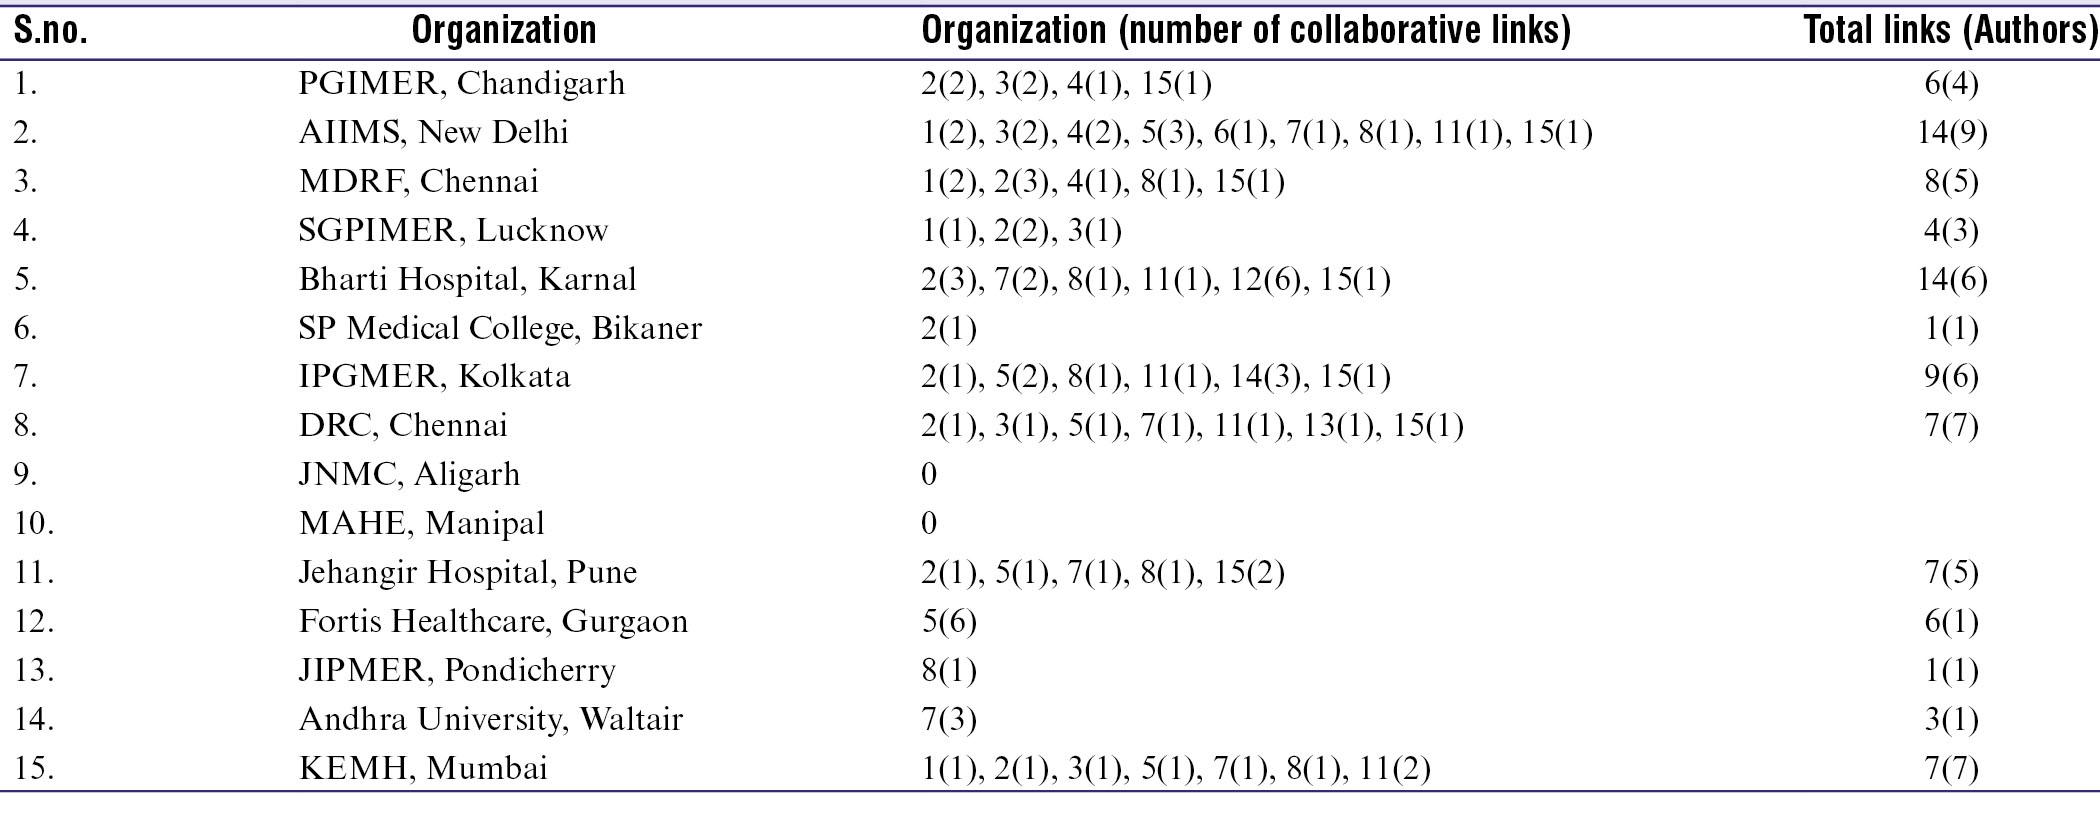 ESM Table 7: Collaborative linkages among Top 15 organizations during 1996-2019